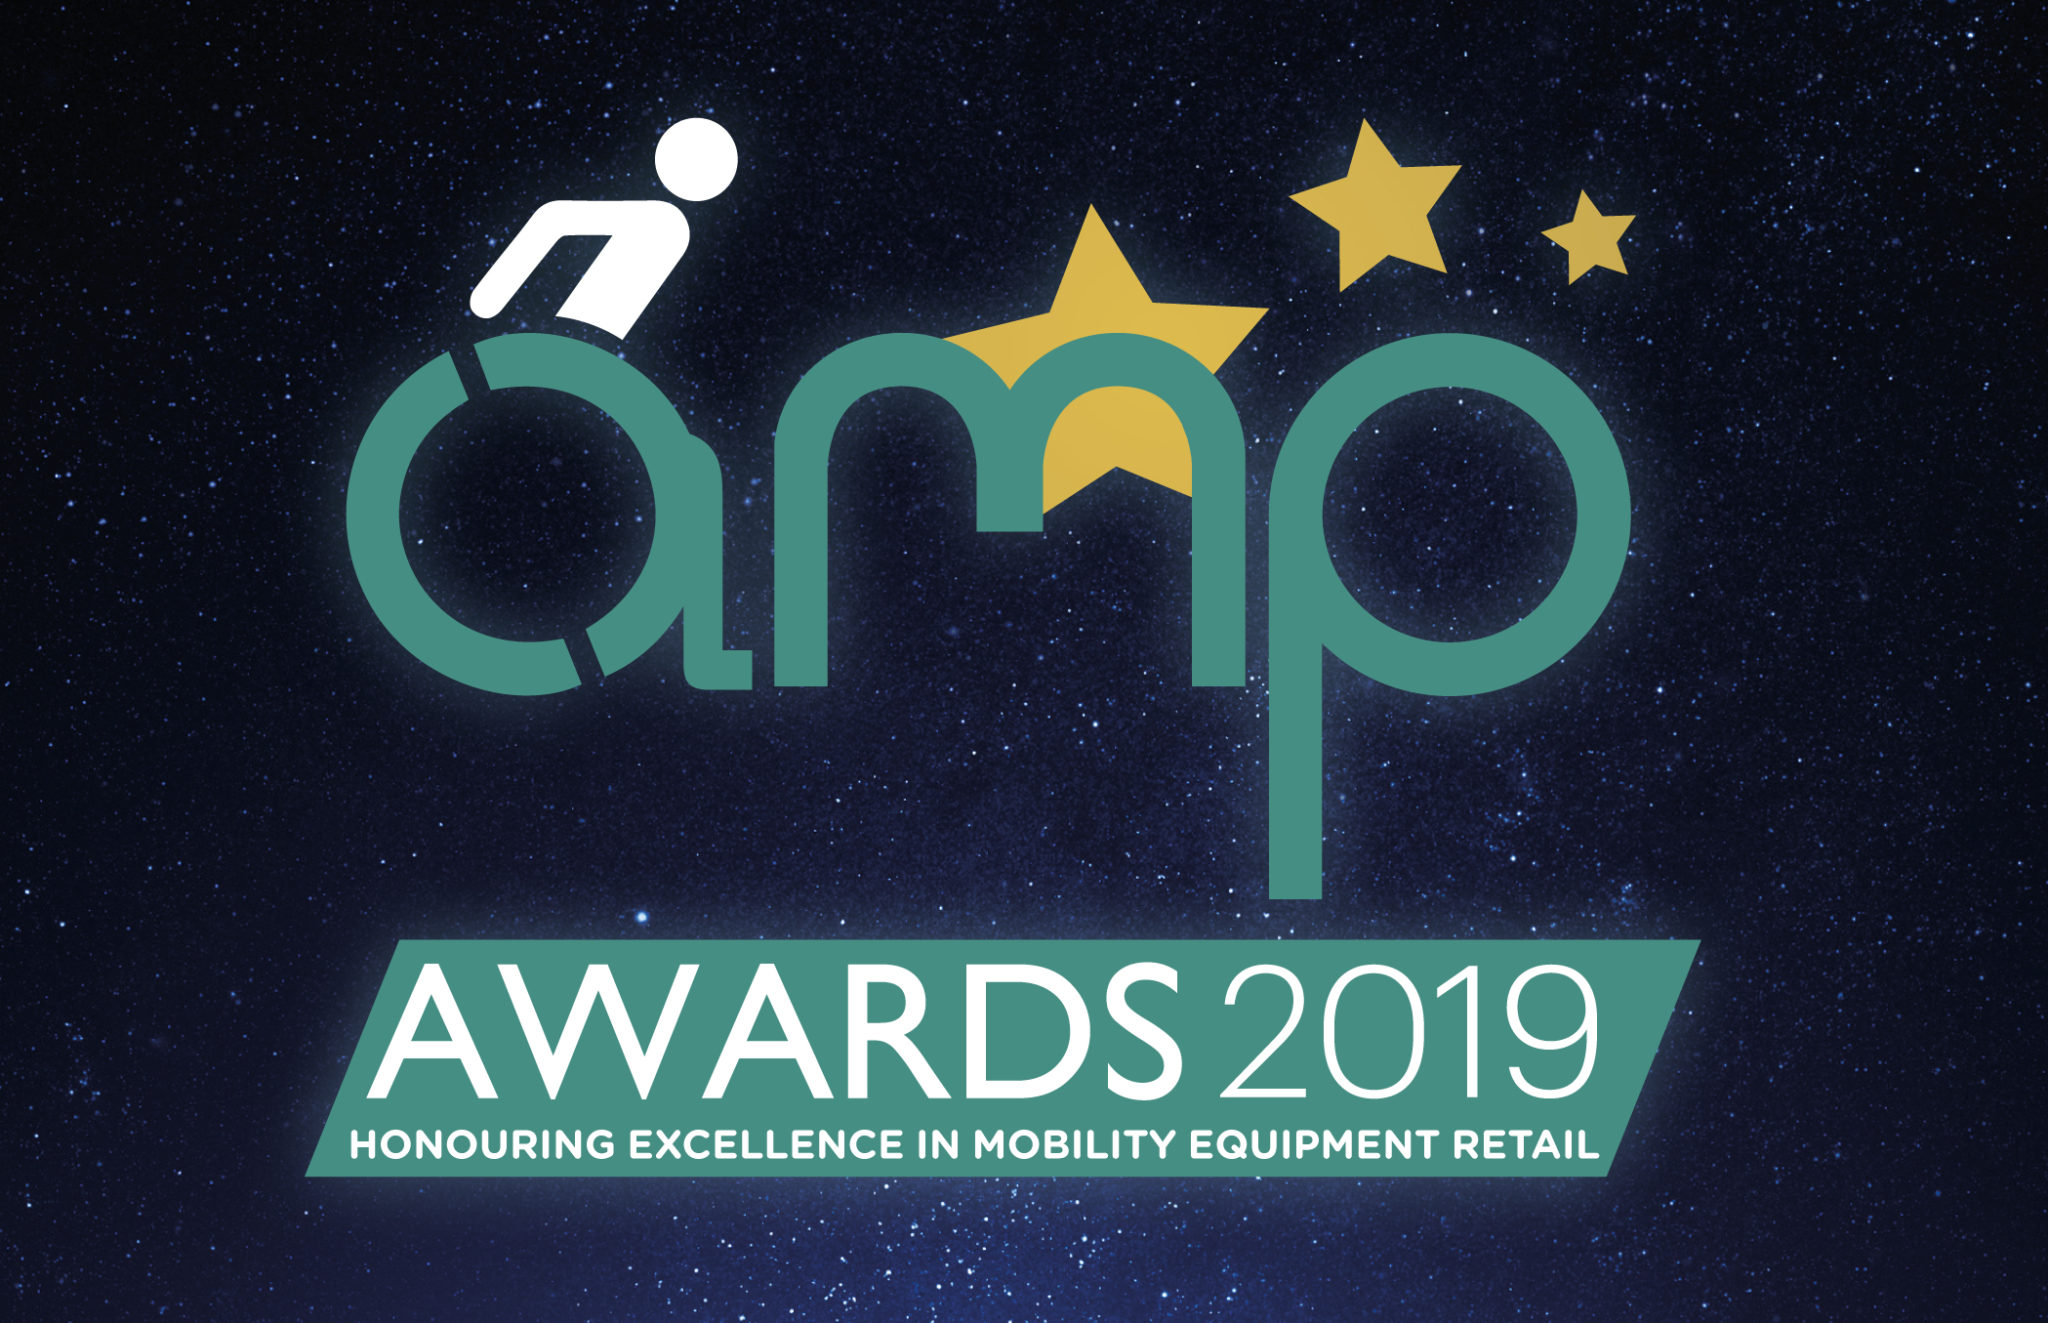 amp awards 2019 filler logo